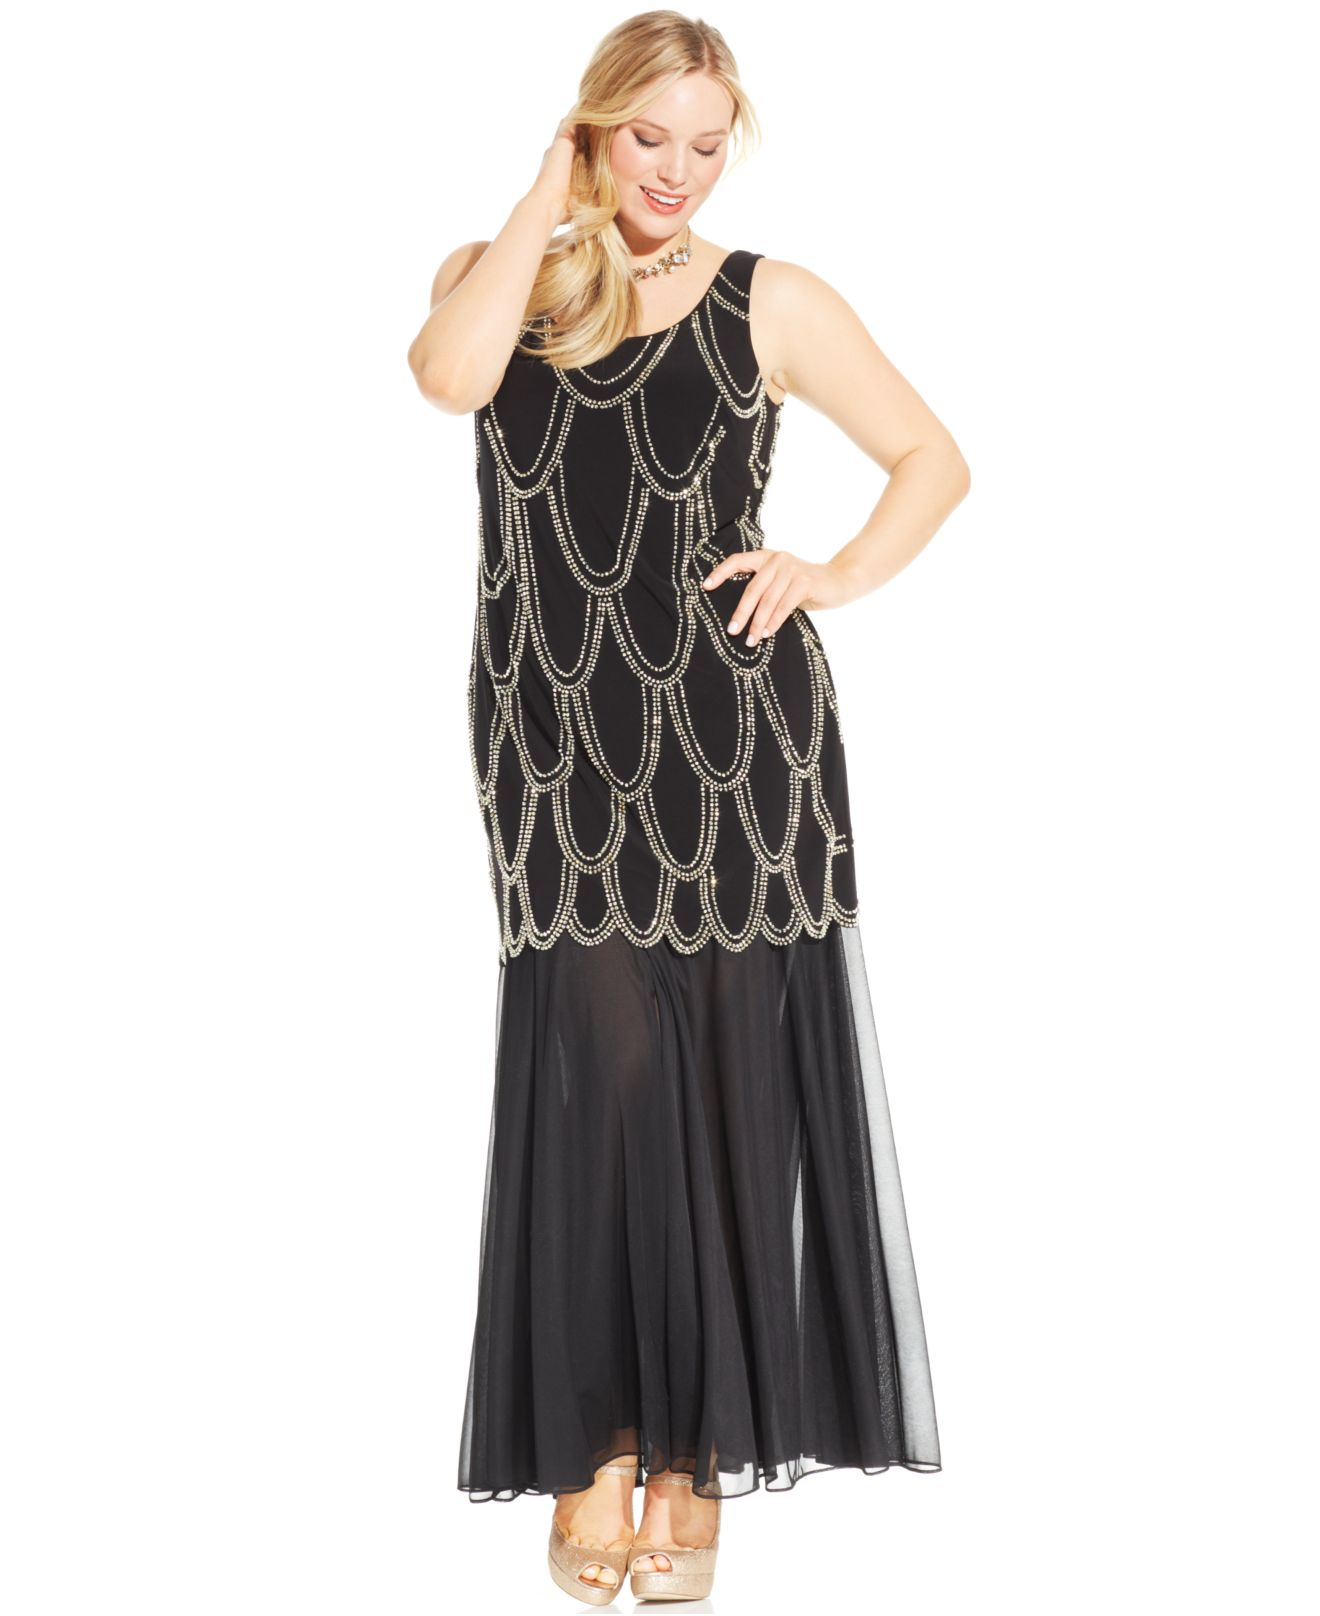 Women\'s Black Plus Size Beaded Drop-waist Dress